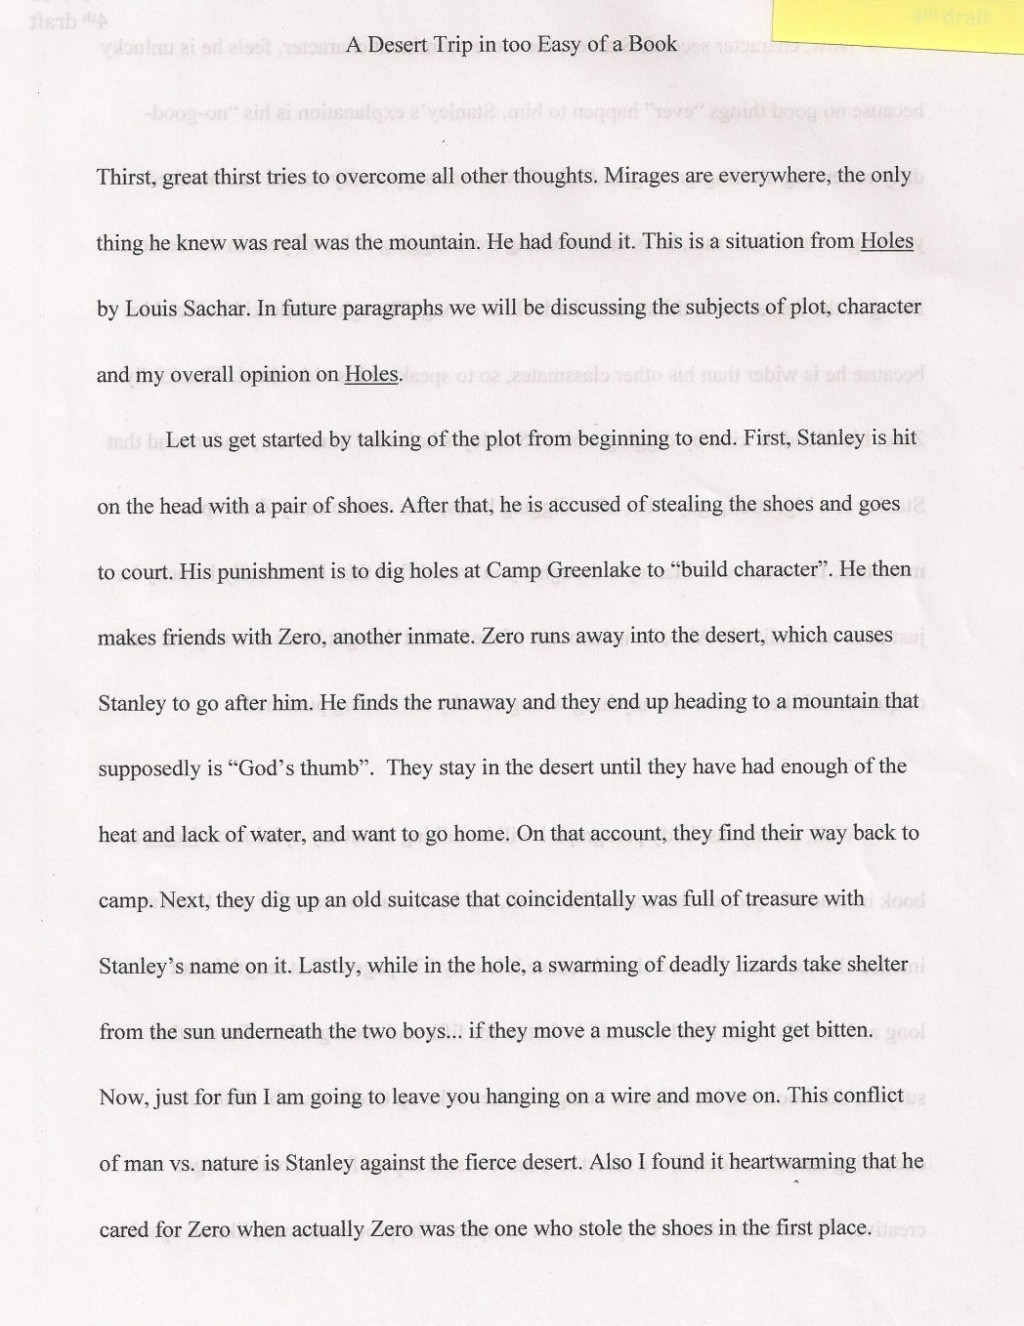 006 Essay Example How To Start Hook In An Good Hooks For Argument Essays College Prompt Desert Application About Failure Your Background Yourself Examples Off Impressive A Of Argumentative On Kill Mockingbird Music Large